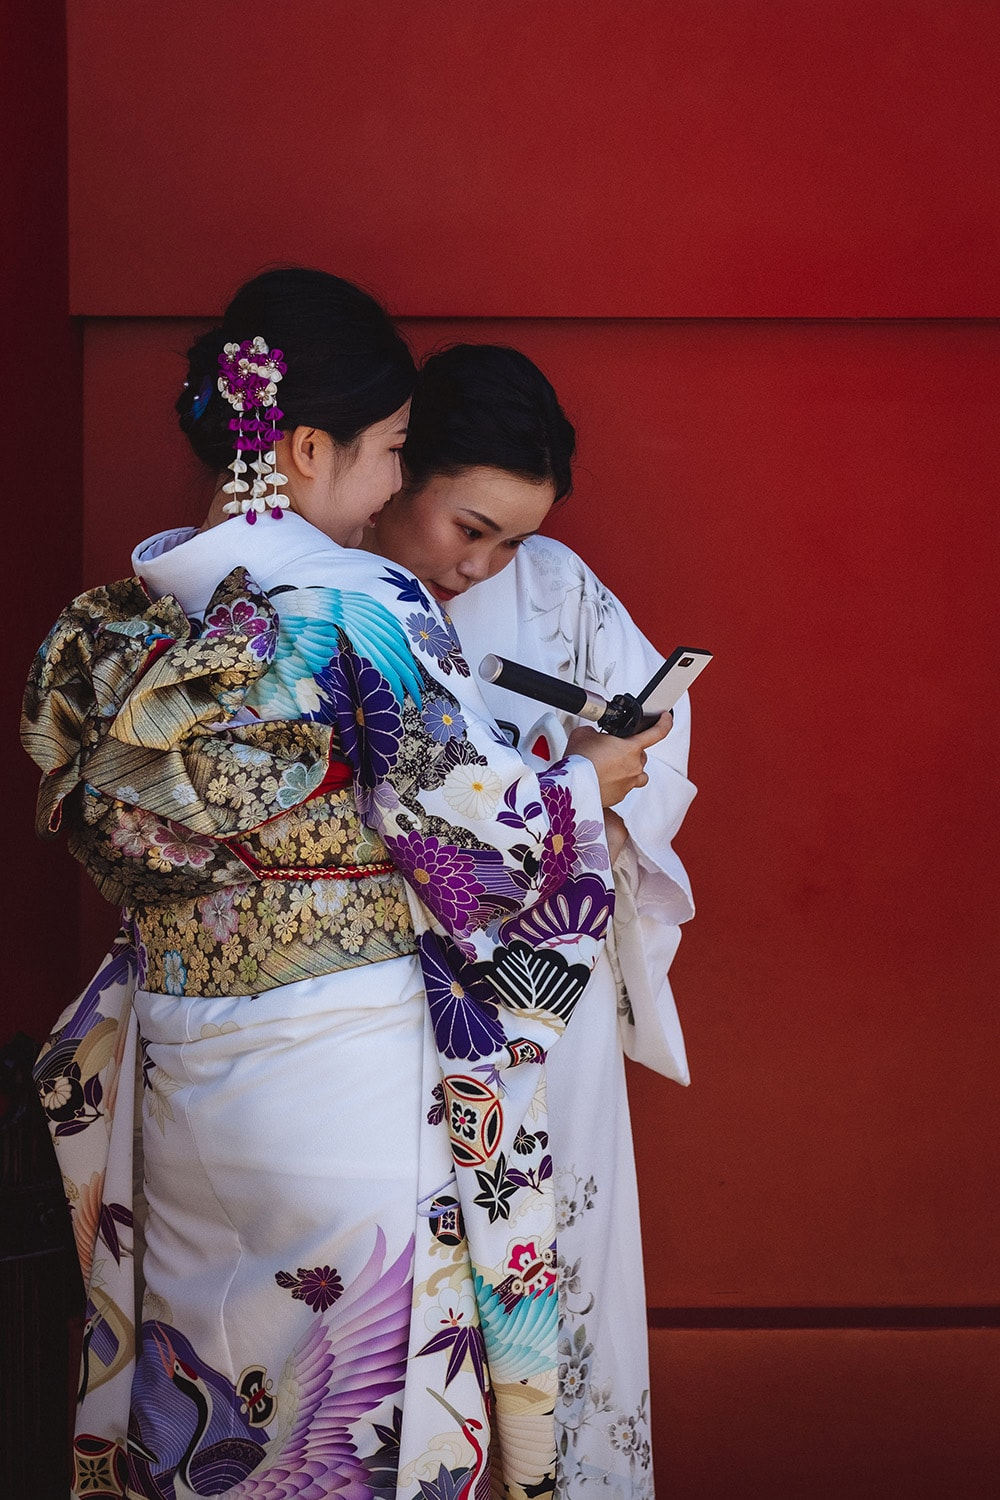 women wearing kimonos looking at phone